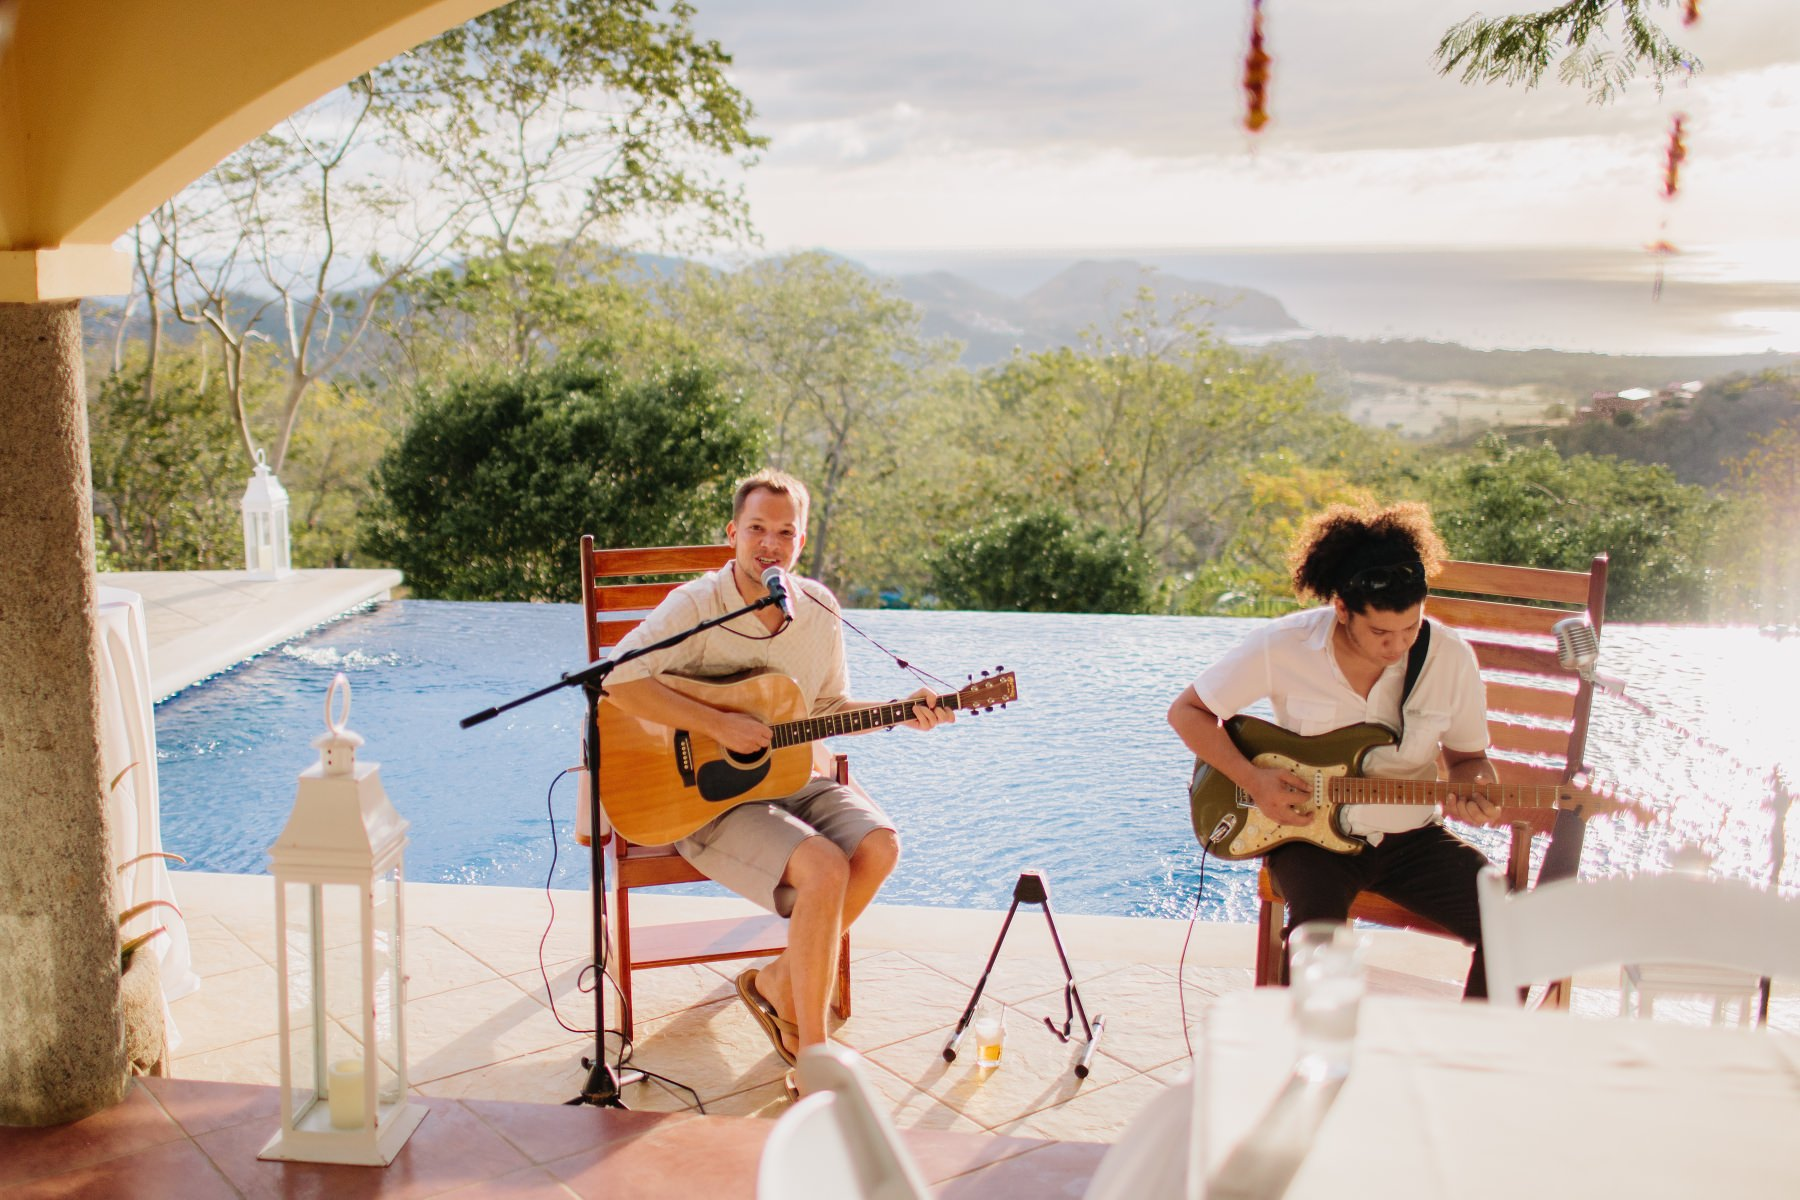 Music band playing during a wedding in Costa Rica